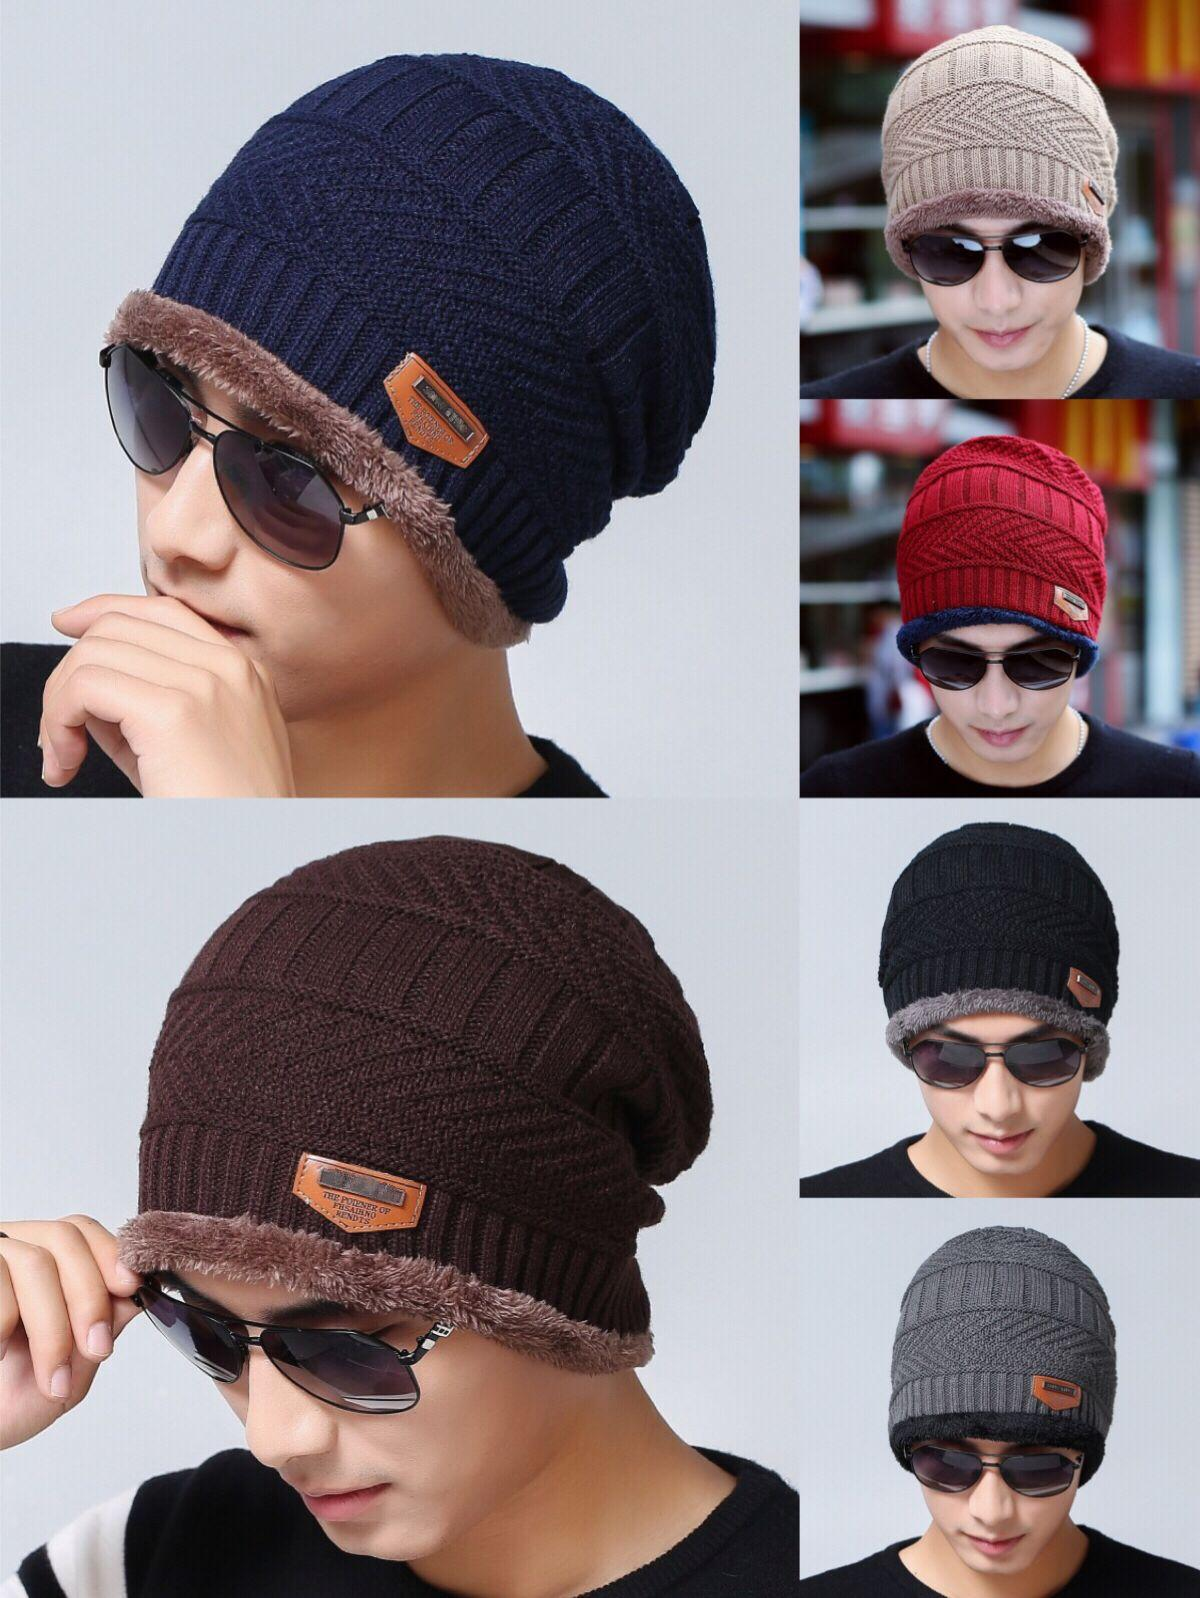 7886fbb9 Beanie Hat Scarf Set Knit Hats Warm Thicken Fleece Winter Hat for Men Women  Adult Kids Unisex Cotton Beanie Knitted Caps Christmas Gifts DHL